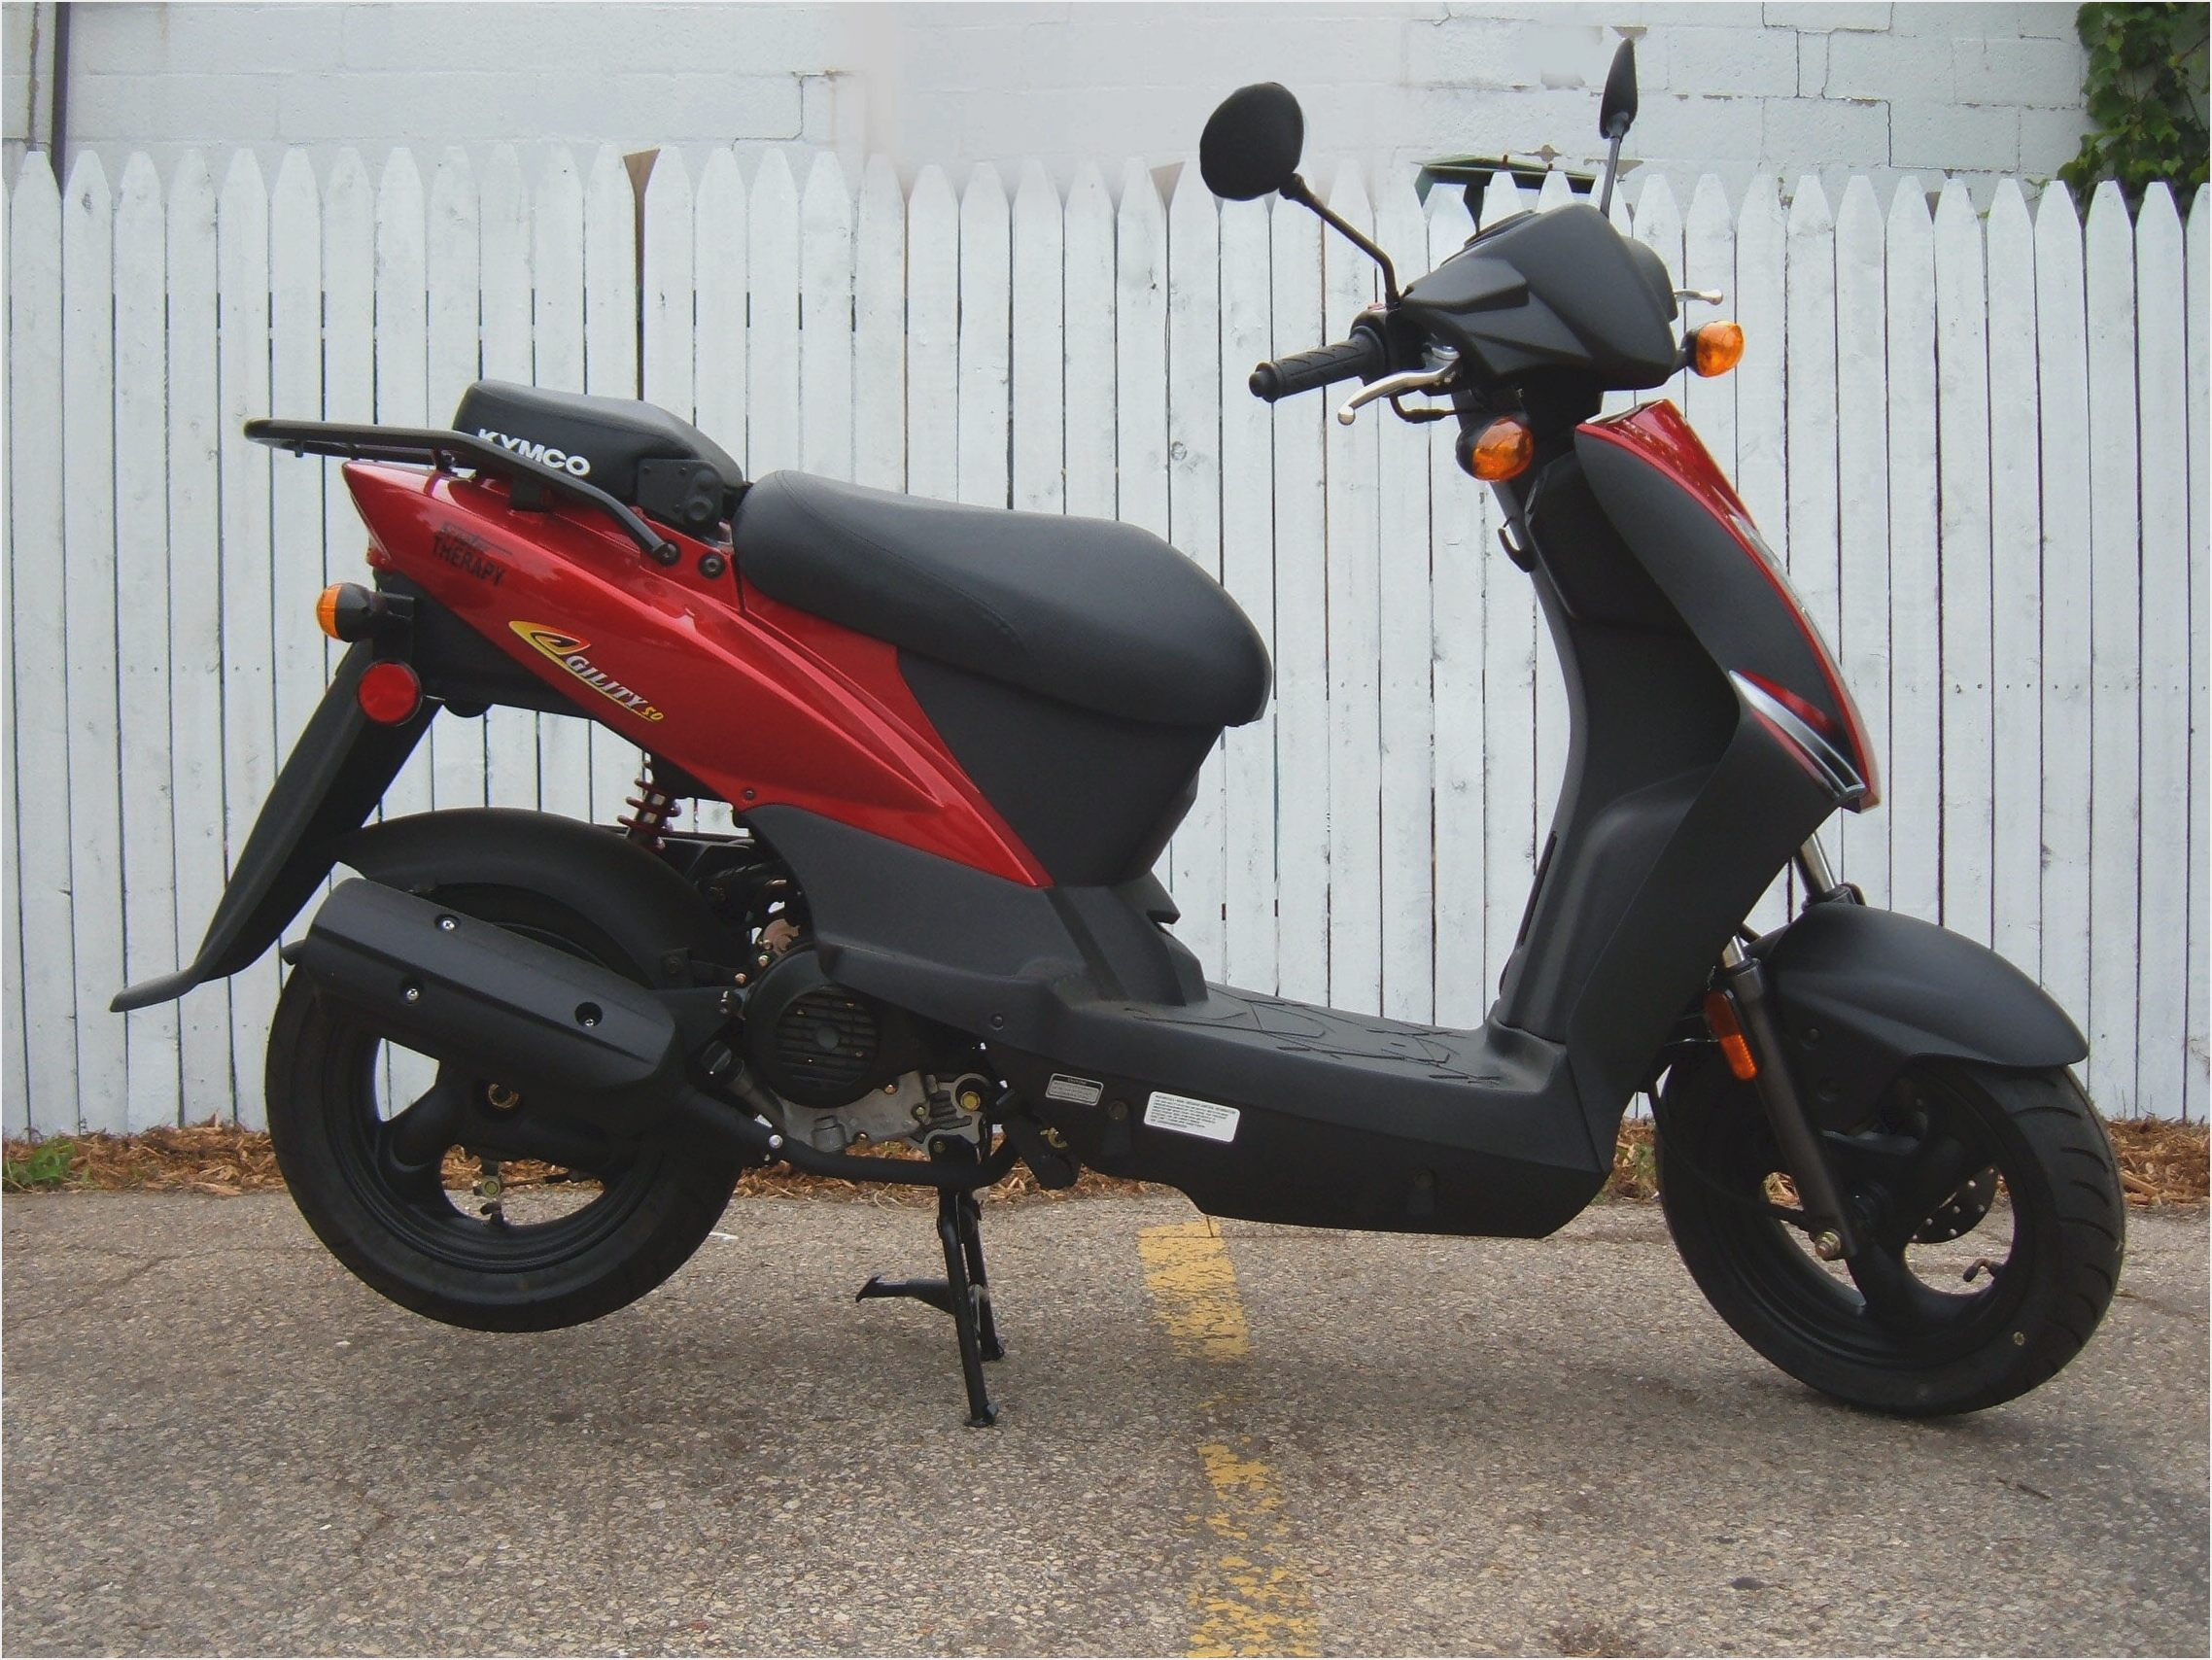 Kymco Agility 50 2007 images #100886